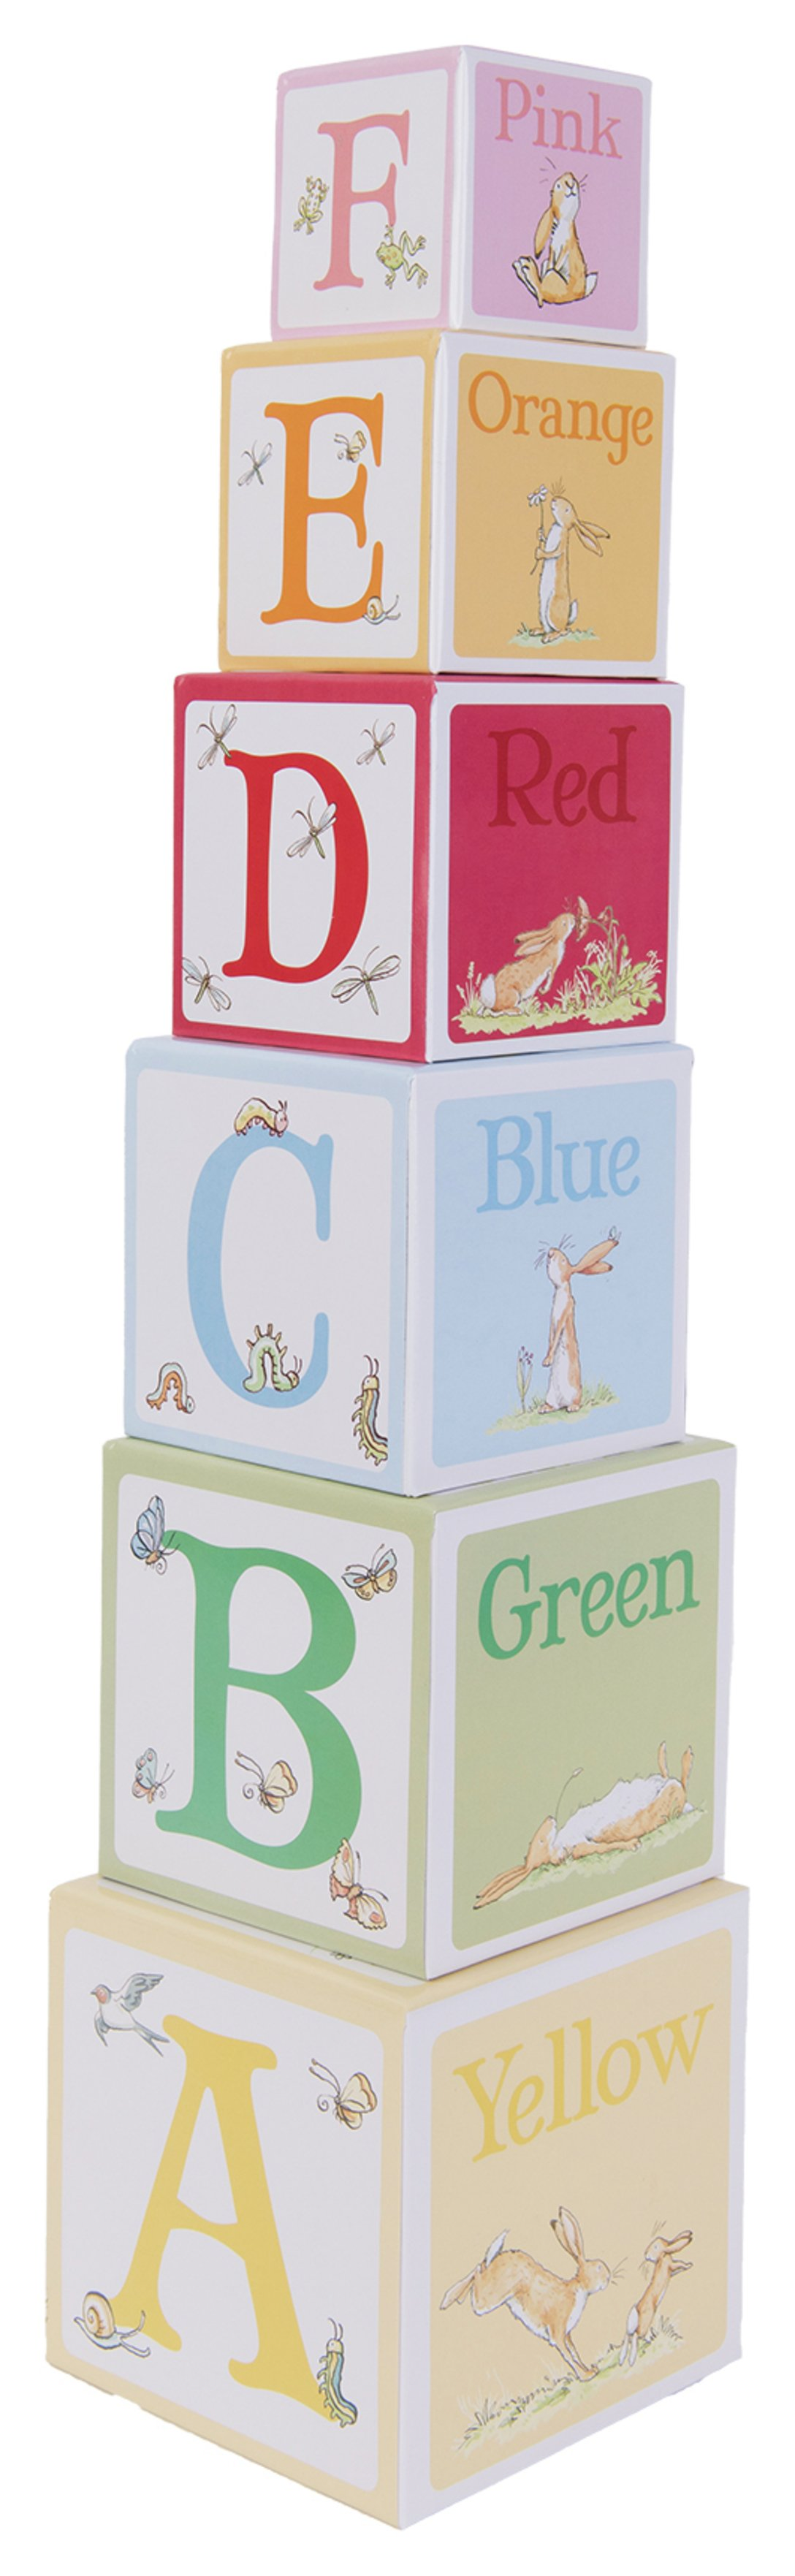 Image of Guess How Much I Love You Stacking Blocks.